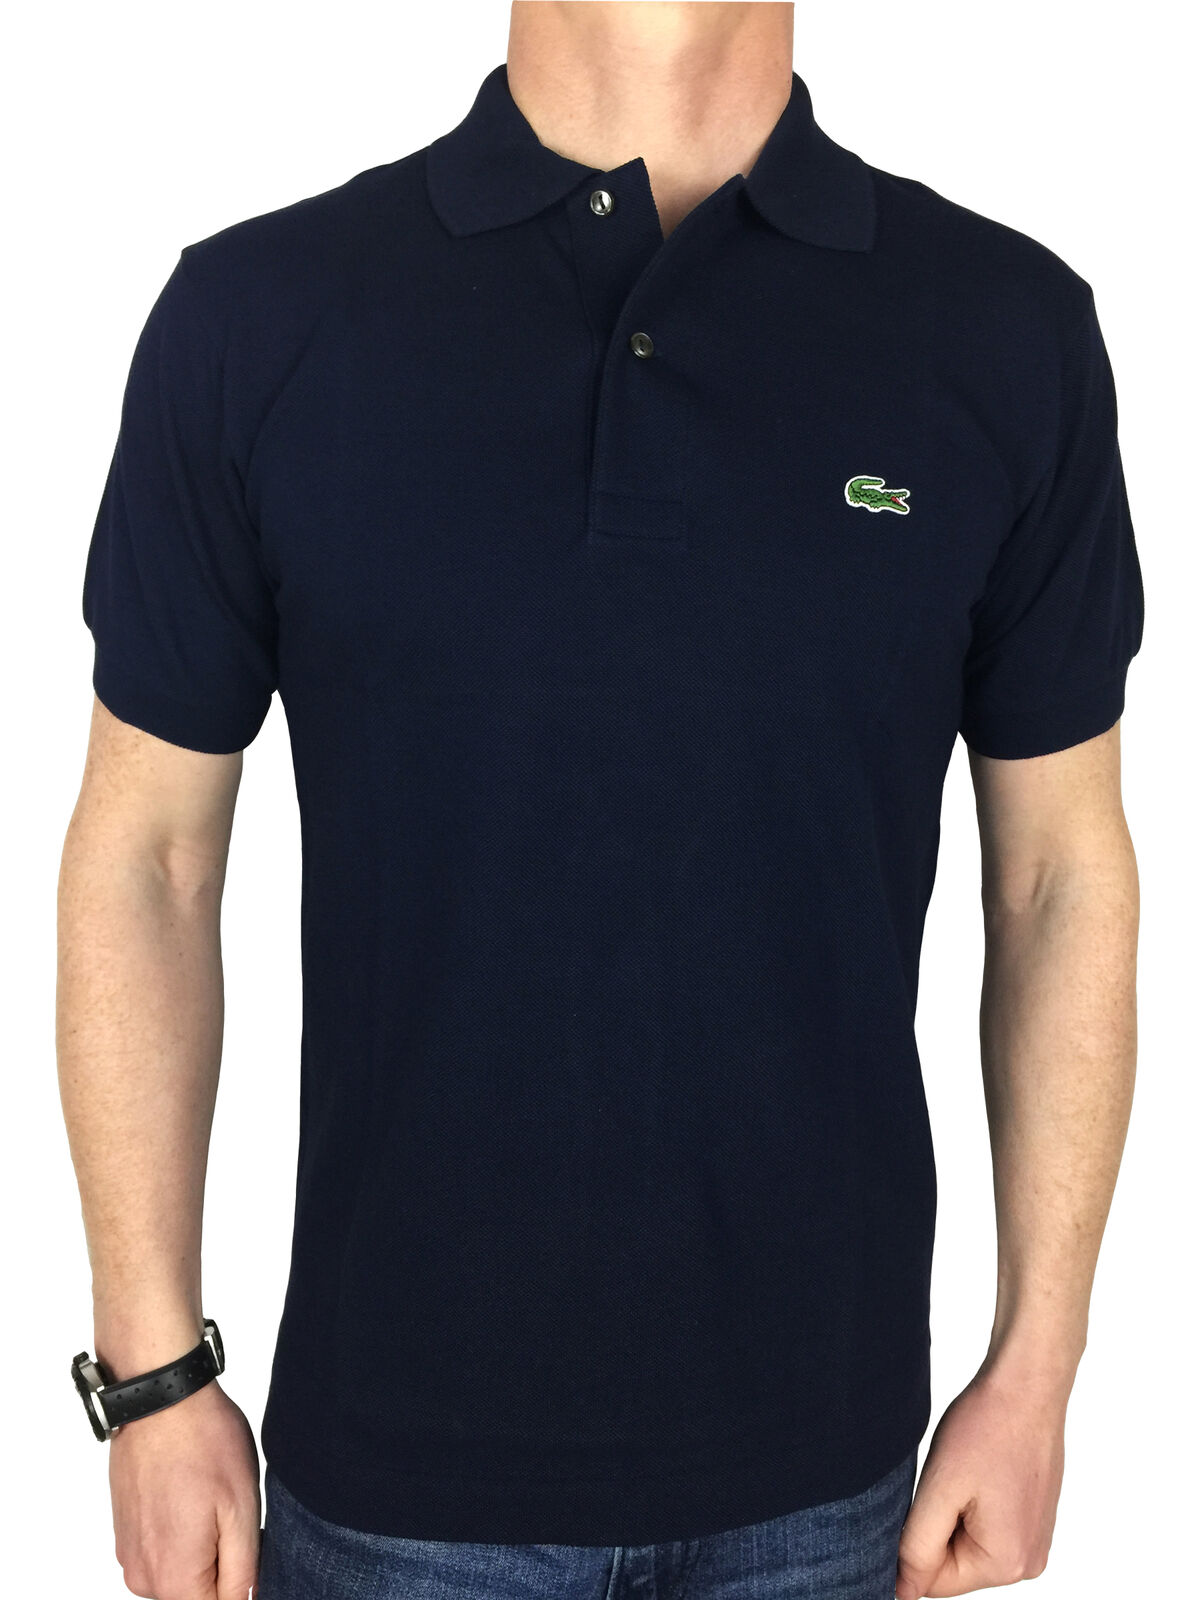 6d0991a3db Lacoste Mens Polo Shirt Navy bluee in L1212 noggbx4644-Casual Button ...